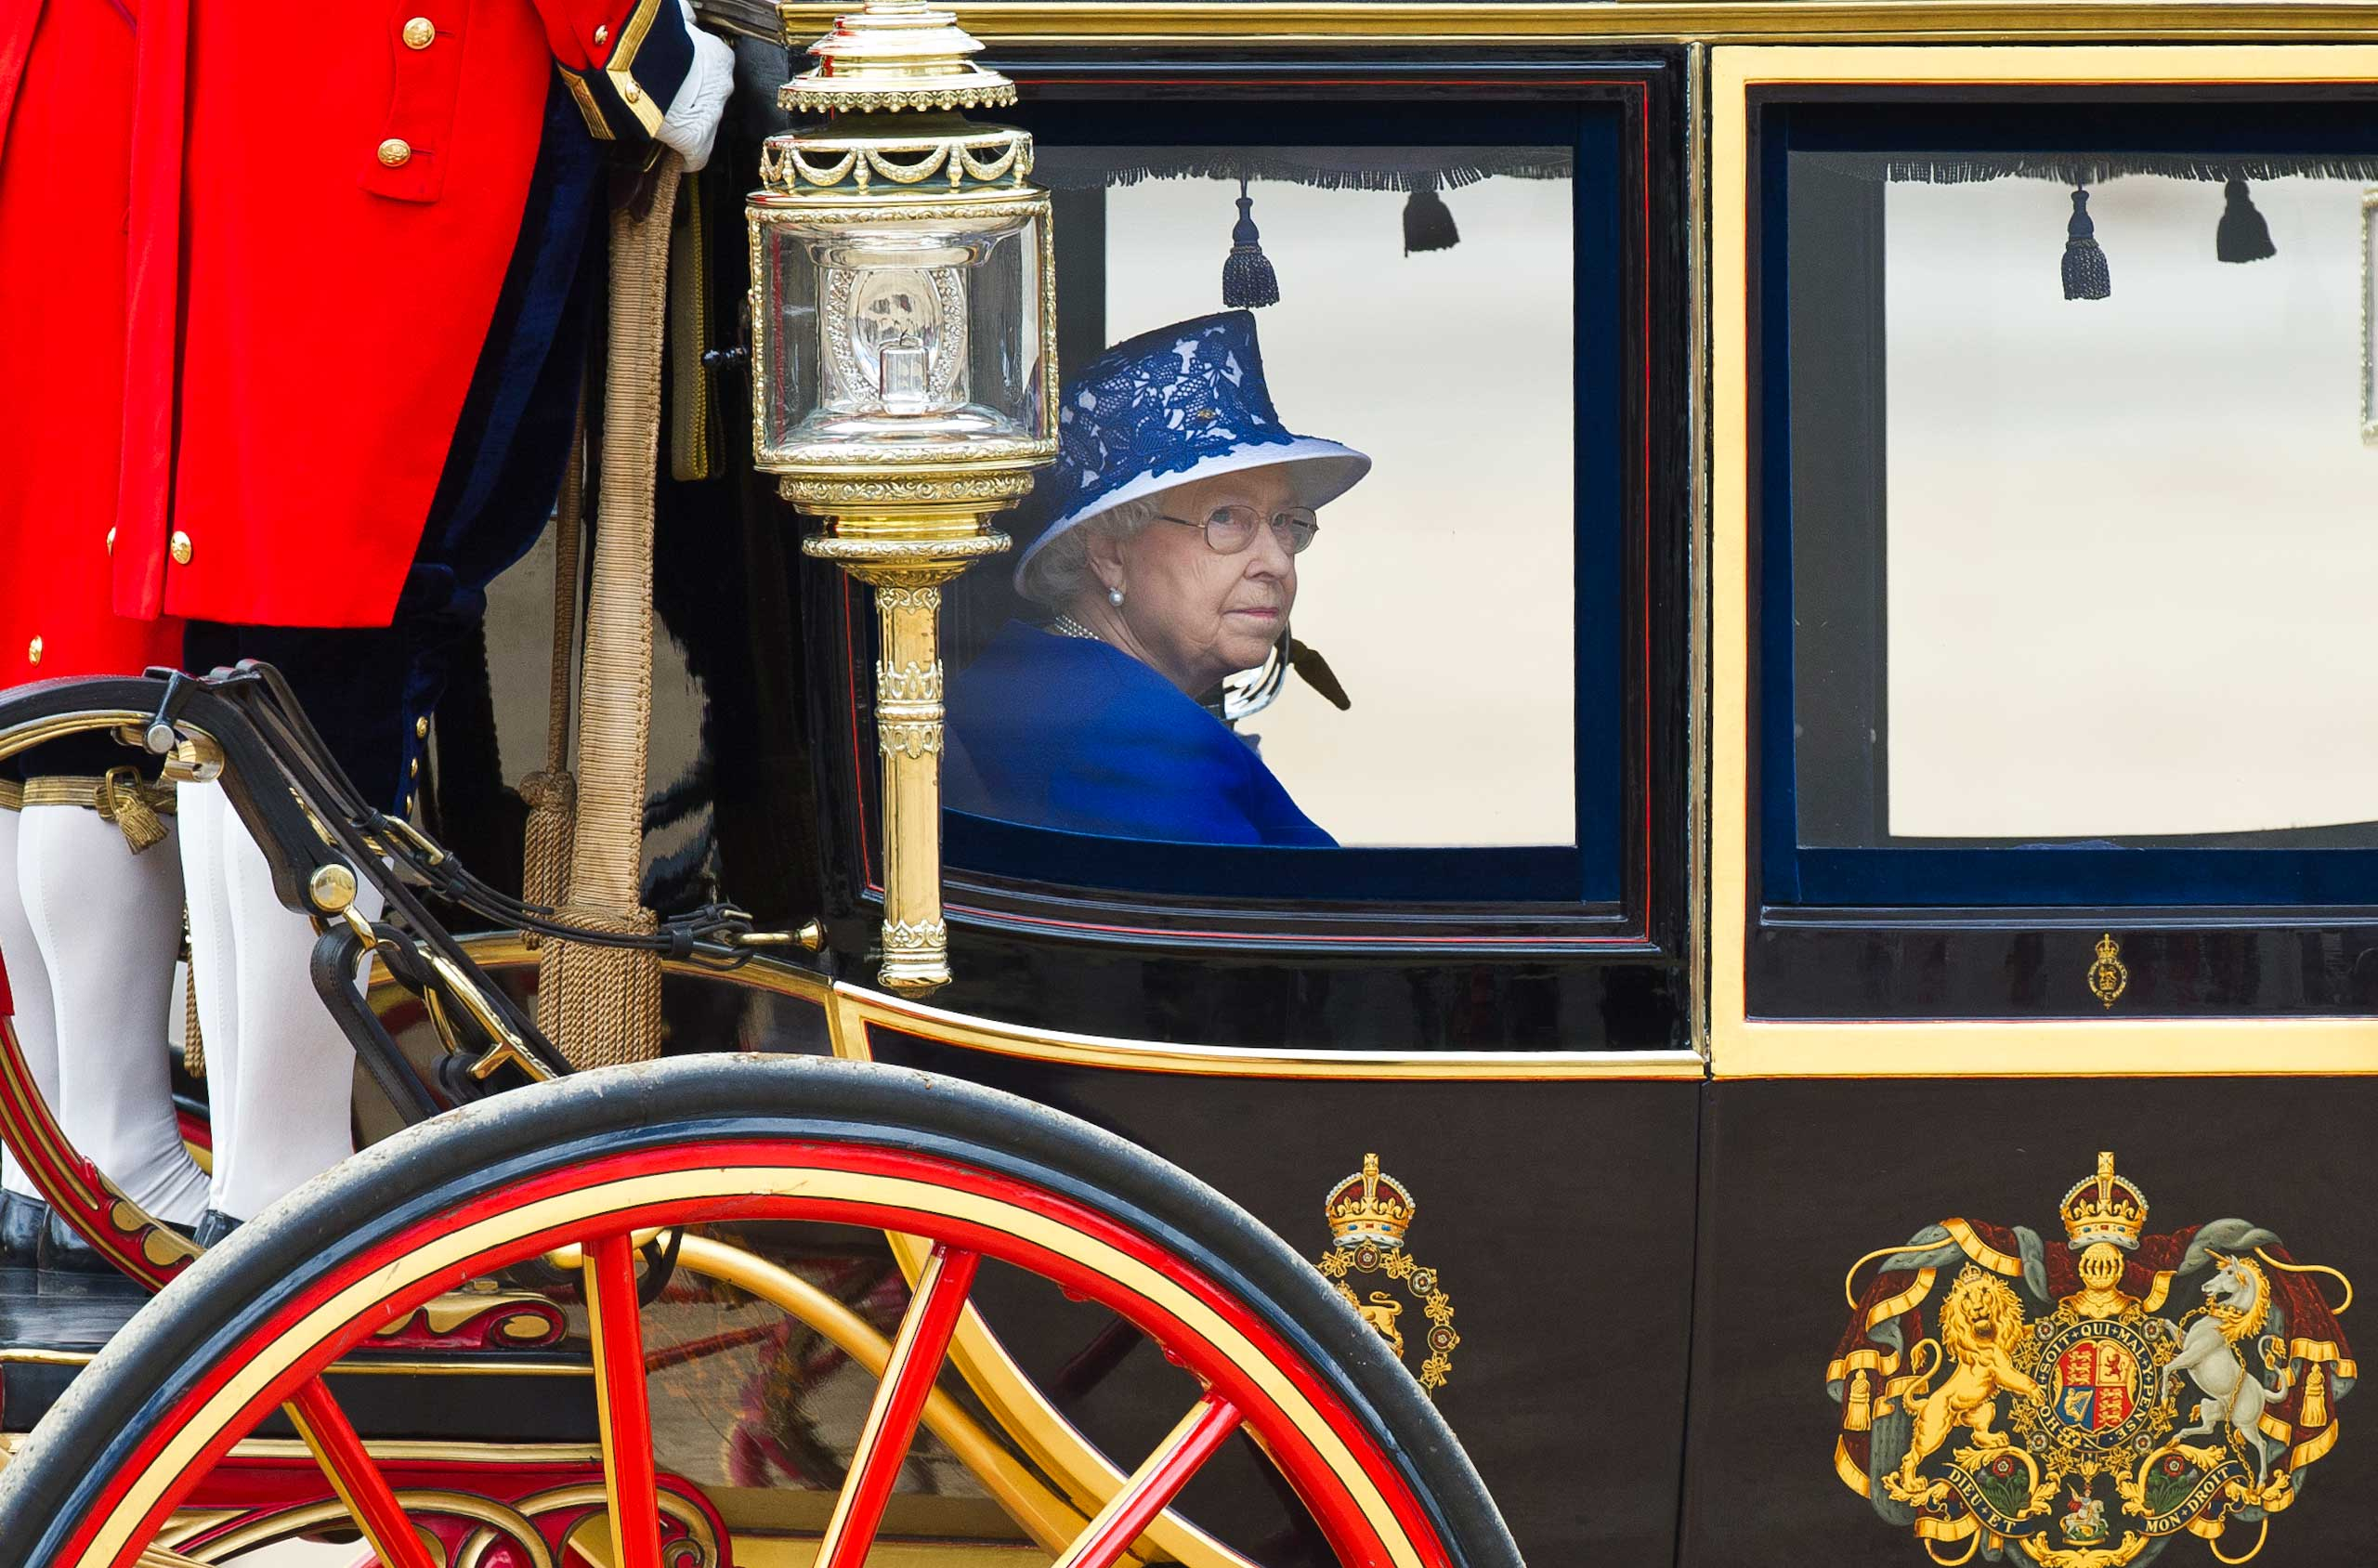 Queen Elizabeth II leaves the Horse Guards Parade for the Trooping the Colour ceremony in London to celebrate her official birthday in June 2013.